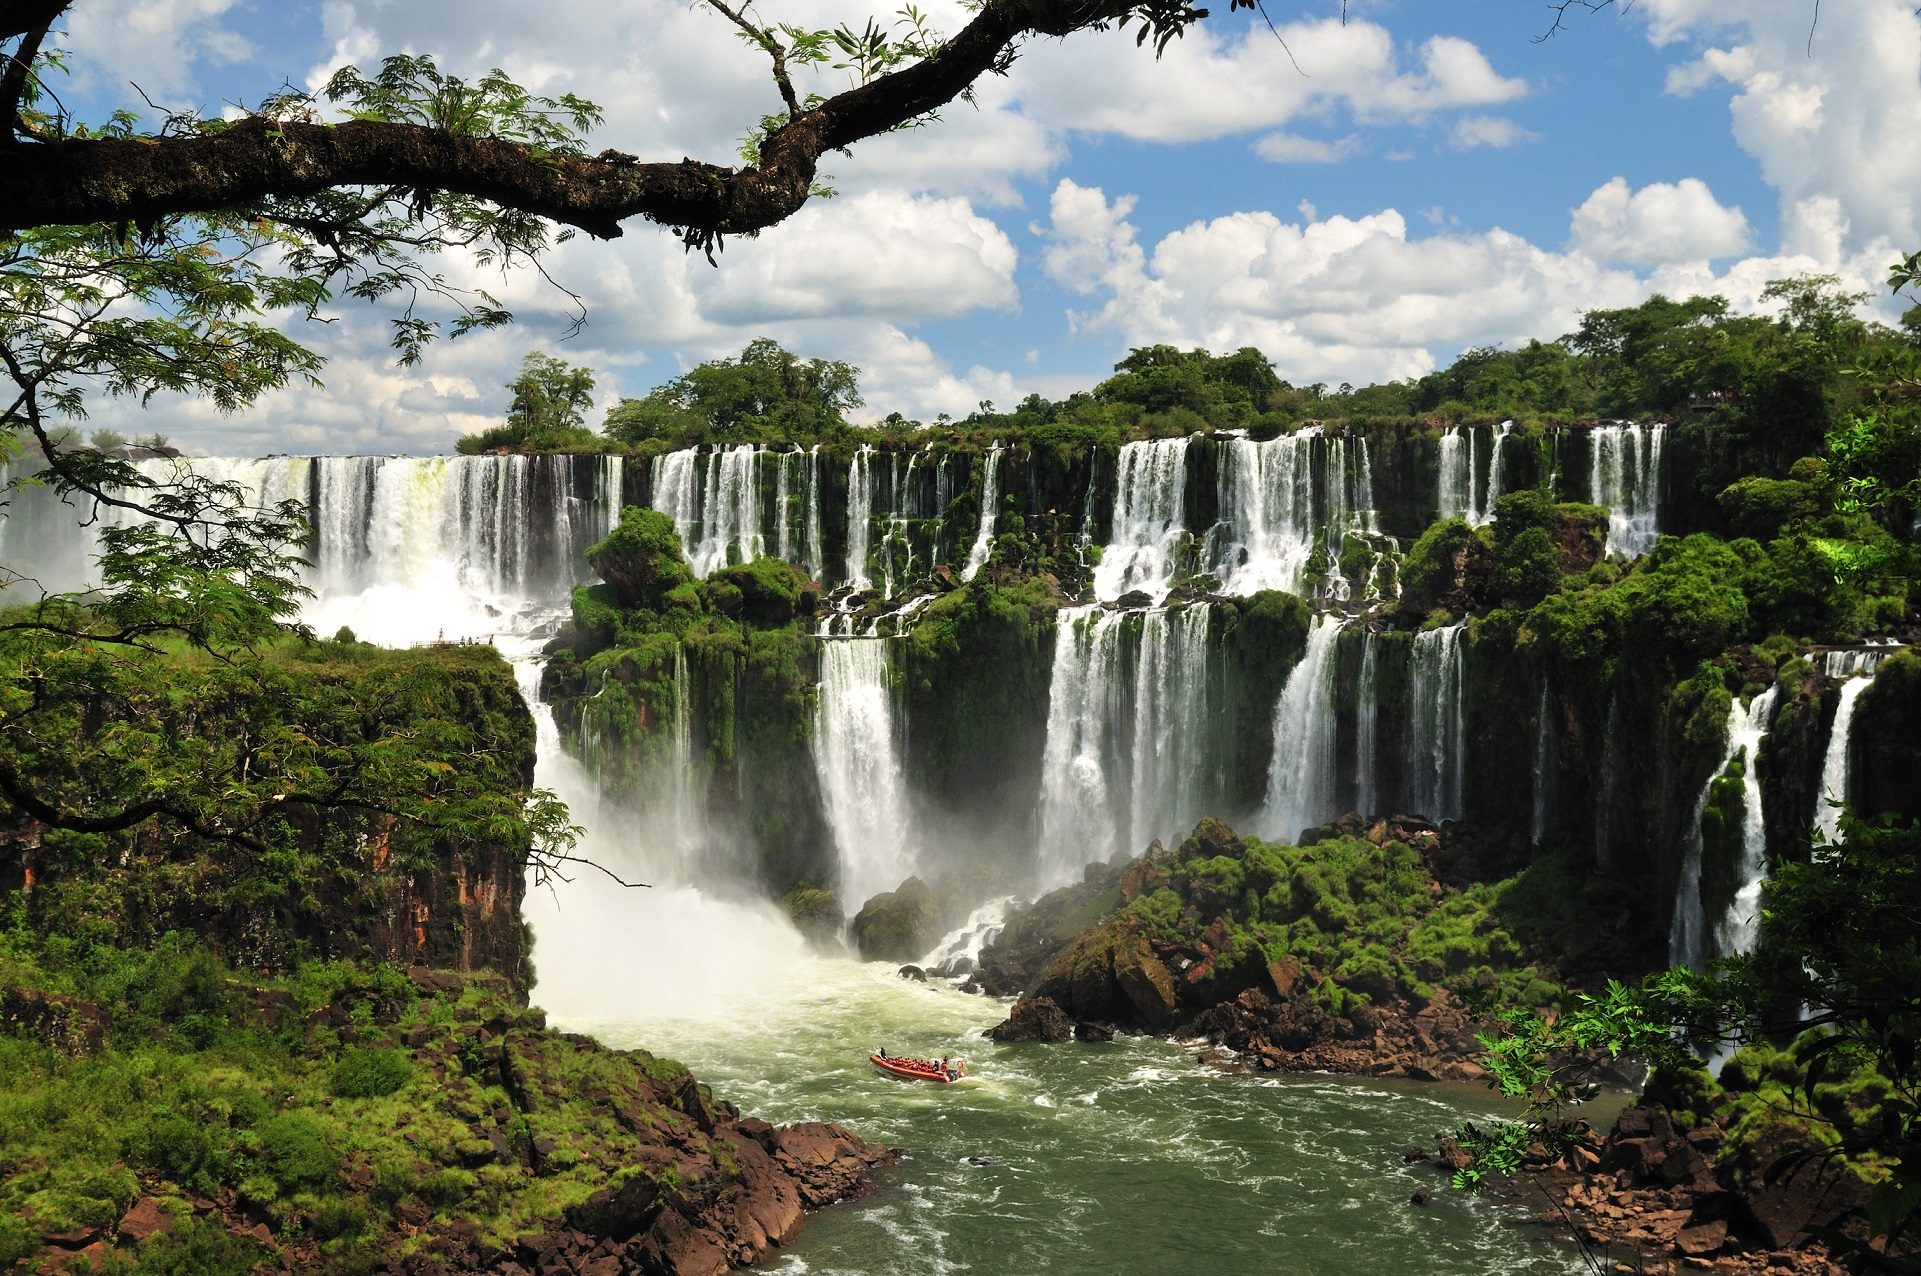 Waterfalls Packages By Plane